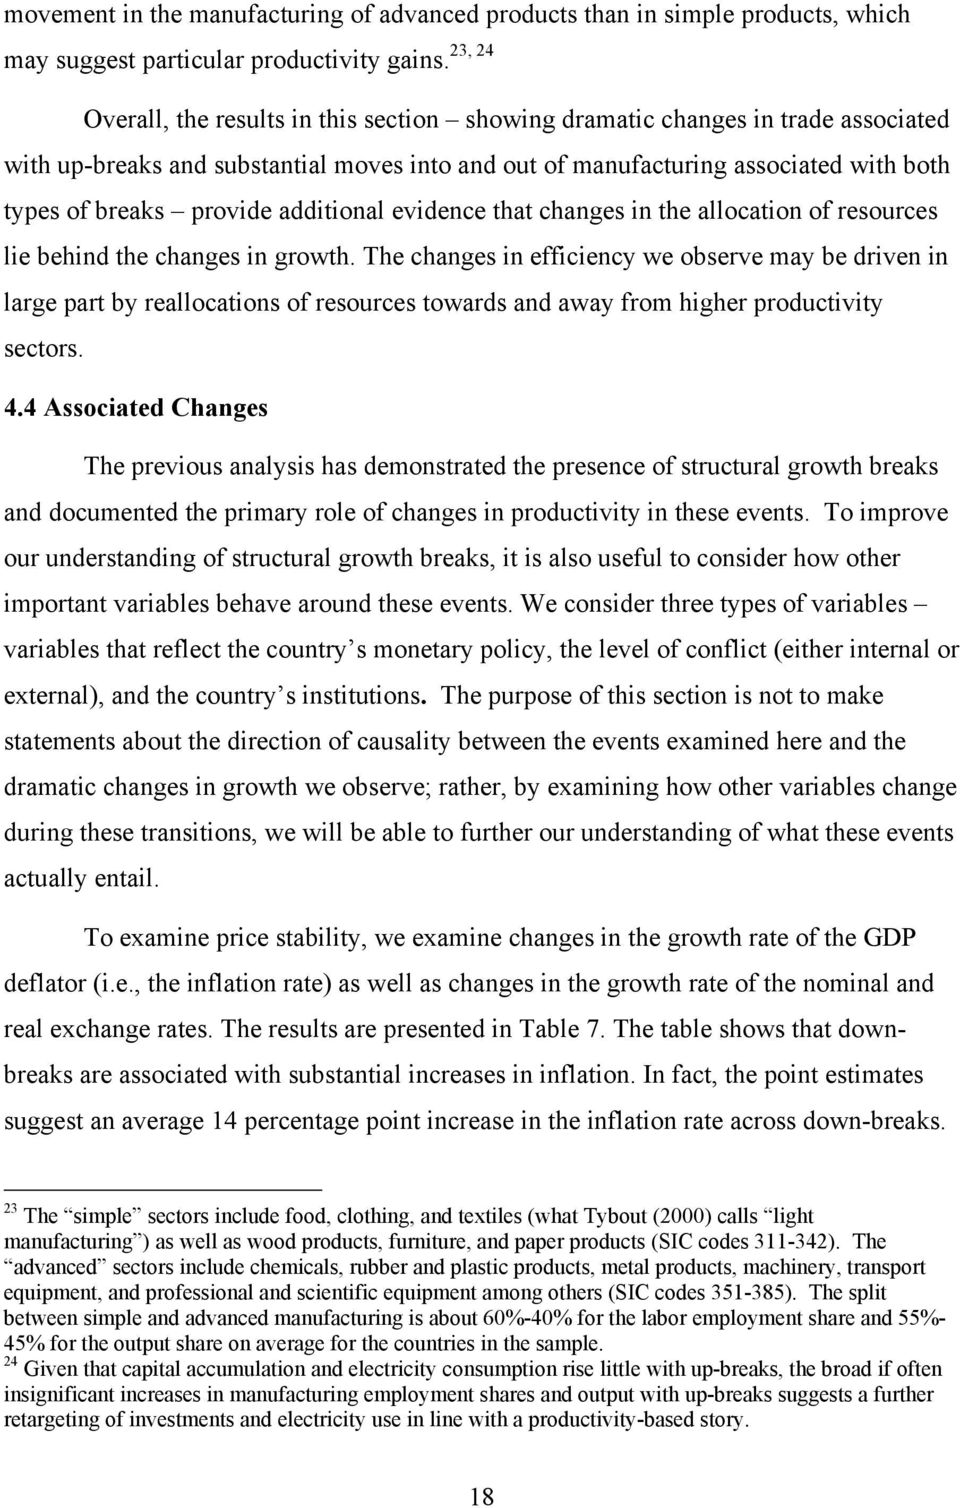 additional evidence that changes in the allocation of resources lie behind the changes in growth.